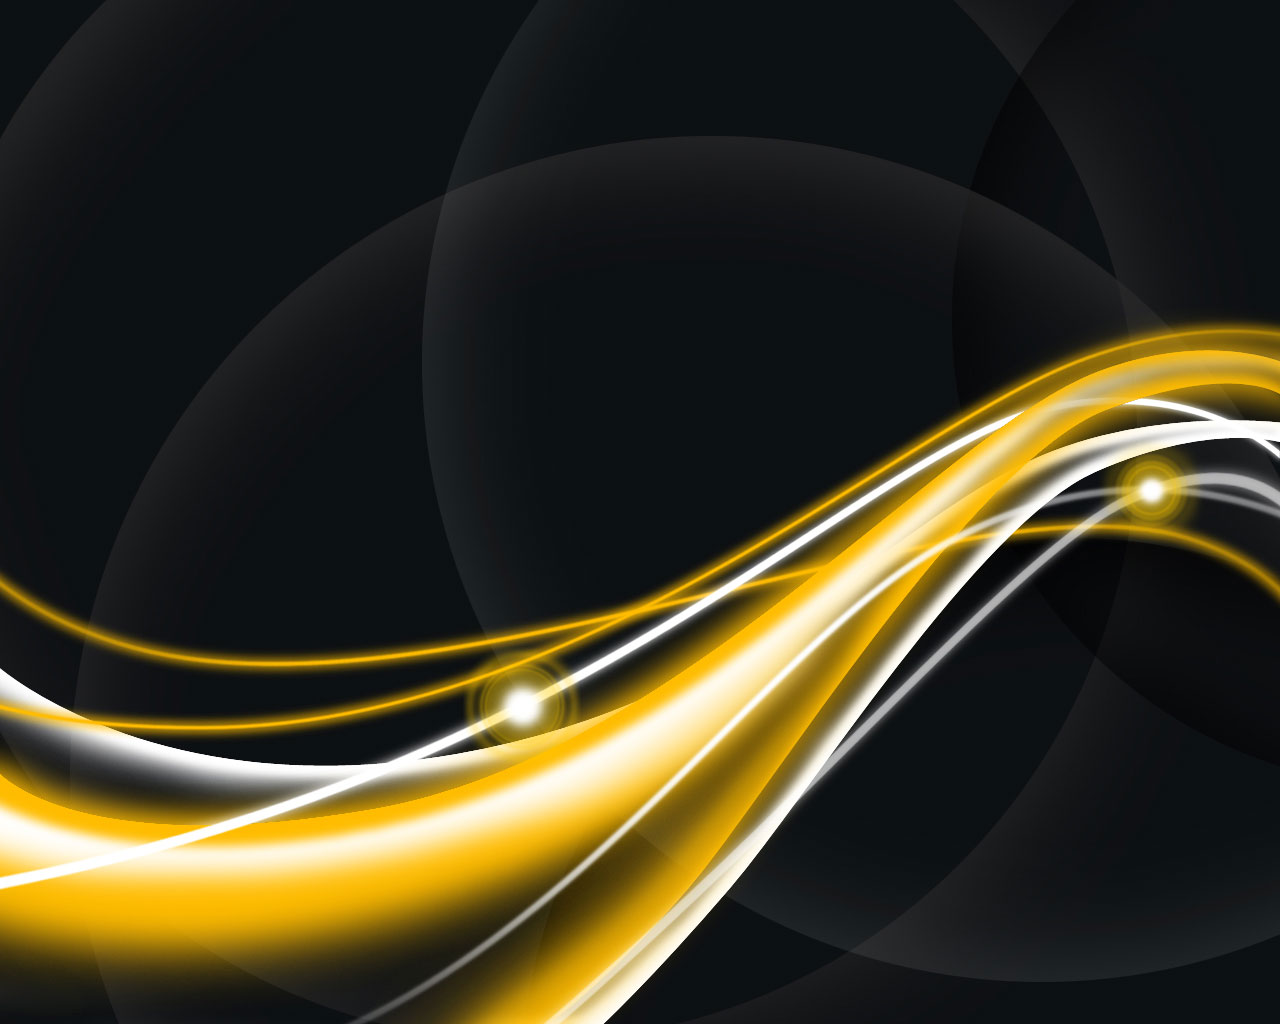 Black And Gold Abstract Wallpaper Black and Gold Abstract 1280x1024